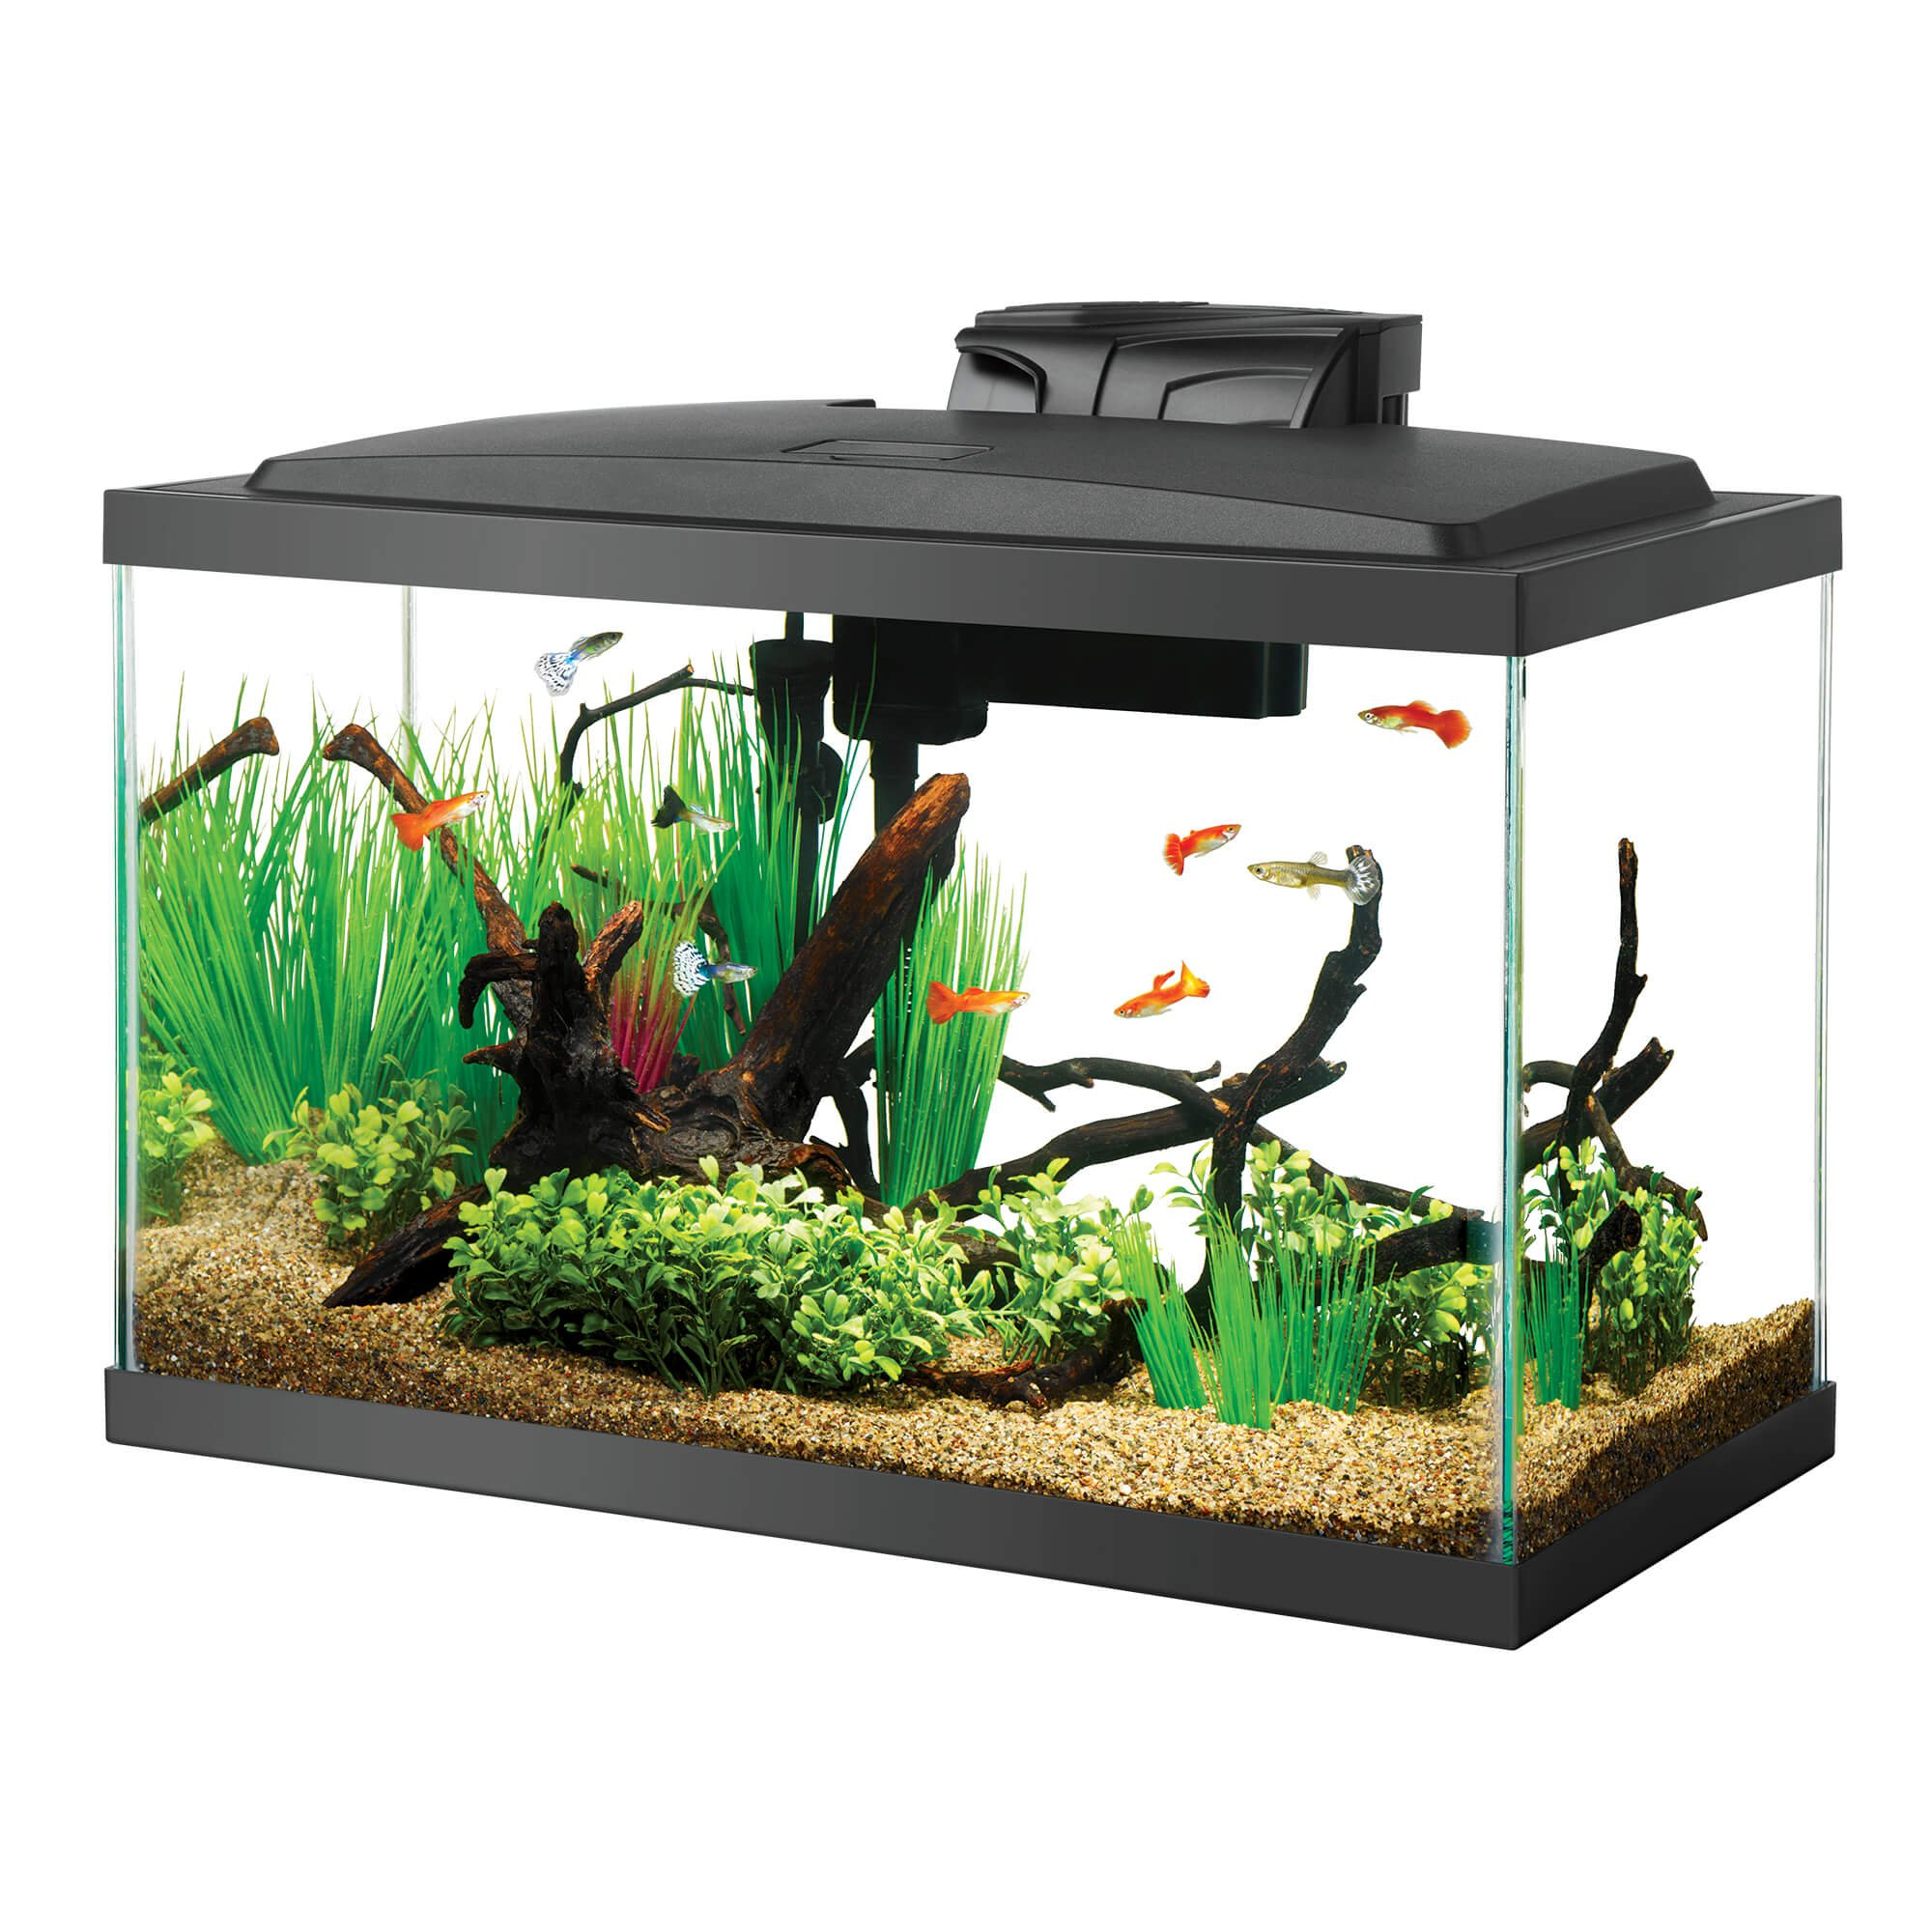 bhp forum team fishkeeping my hobby fish gears automatic full food shifting aquarium feeder for